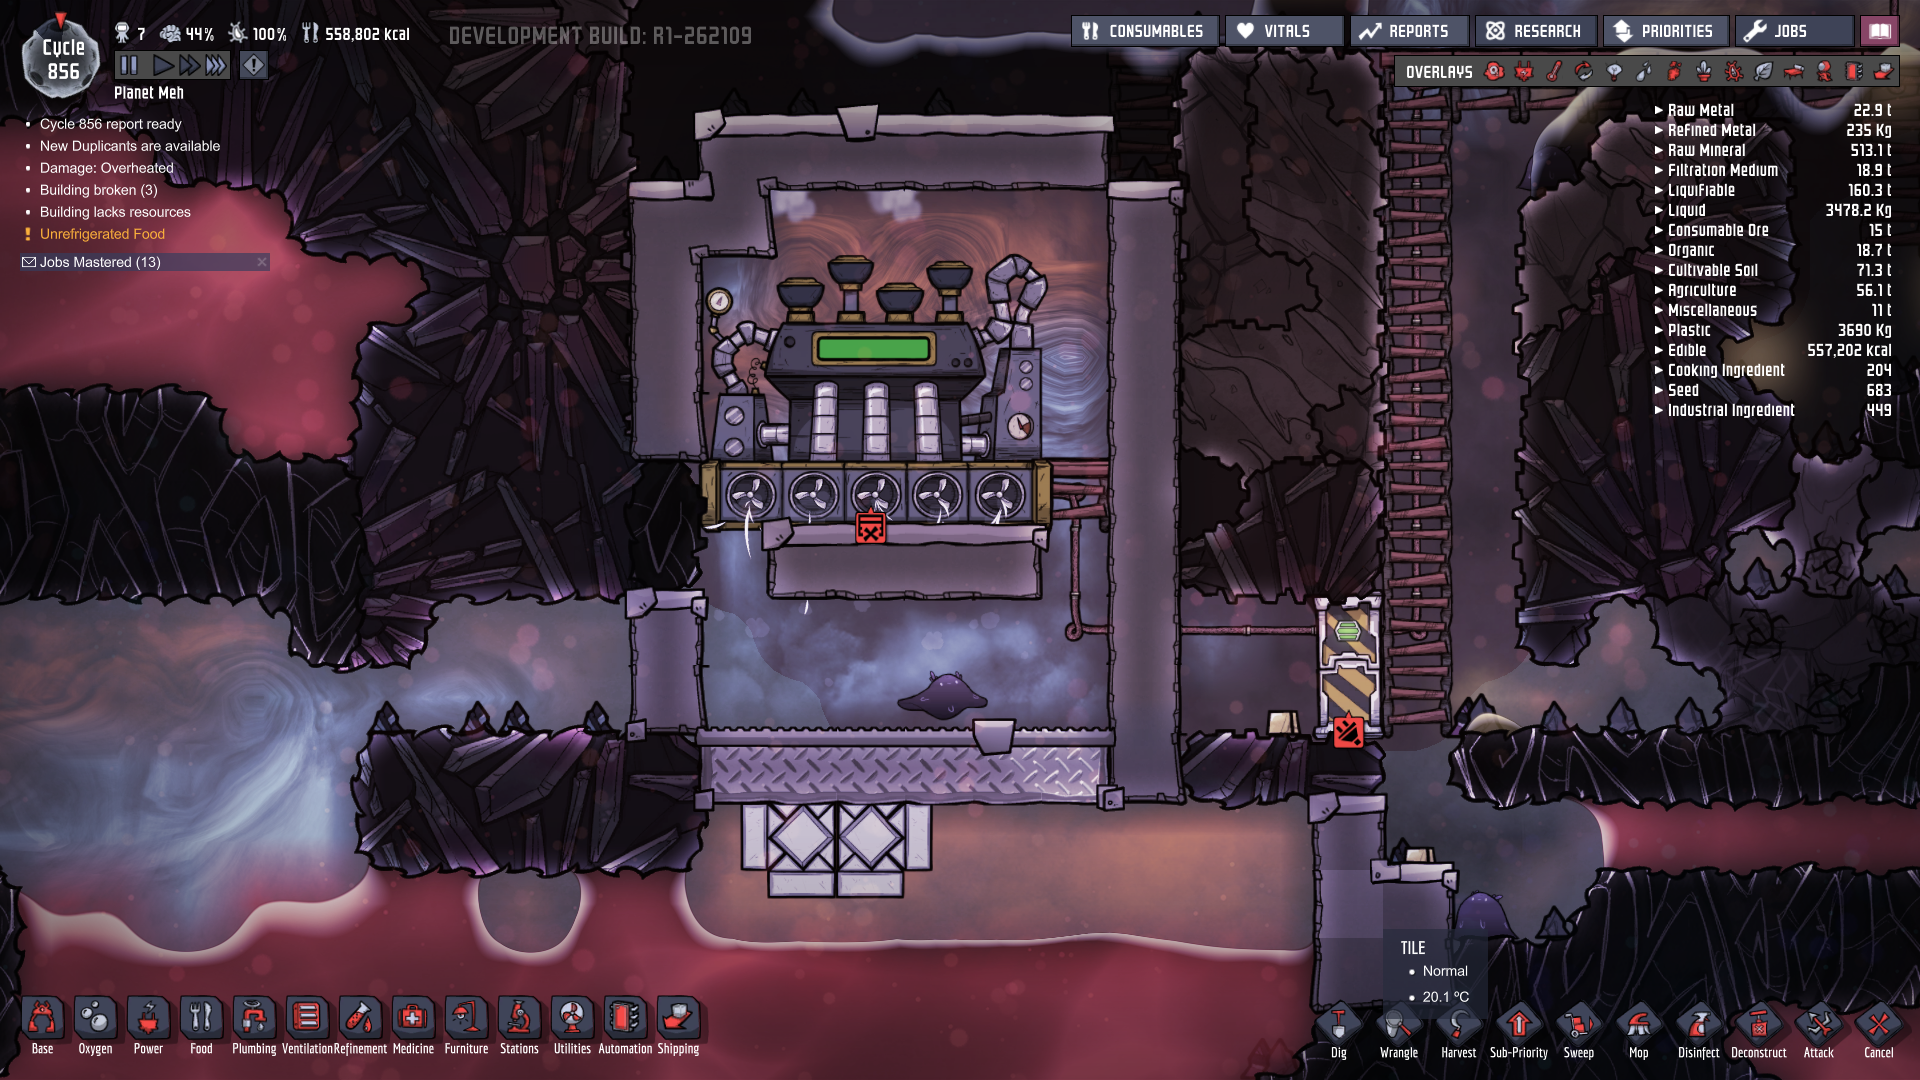 Steam Turbine without Debug - [Oxygen Not Included